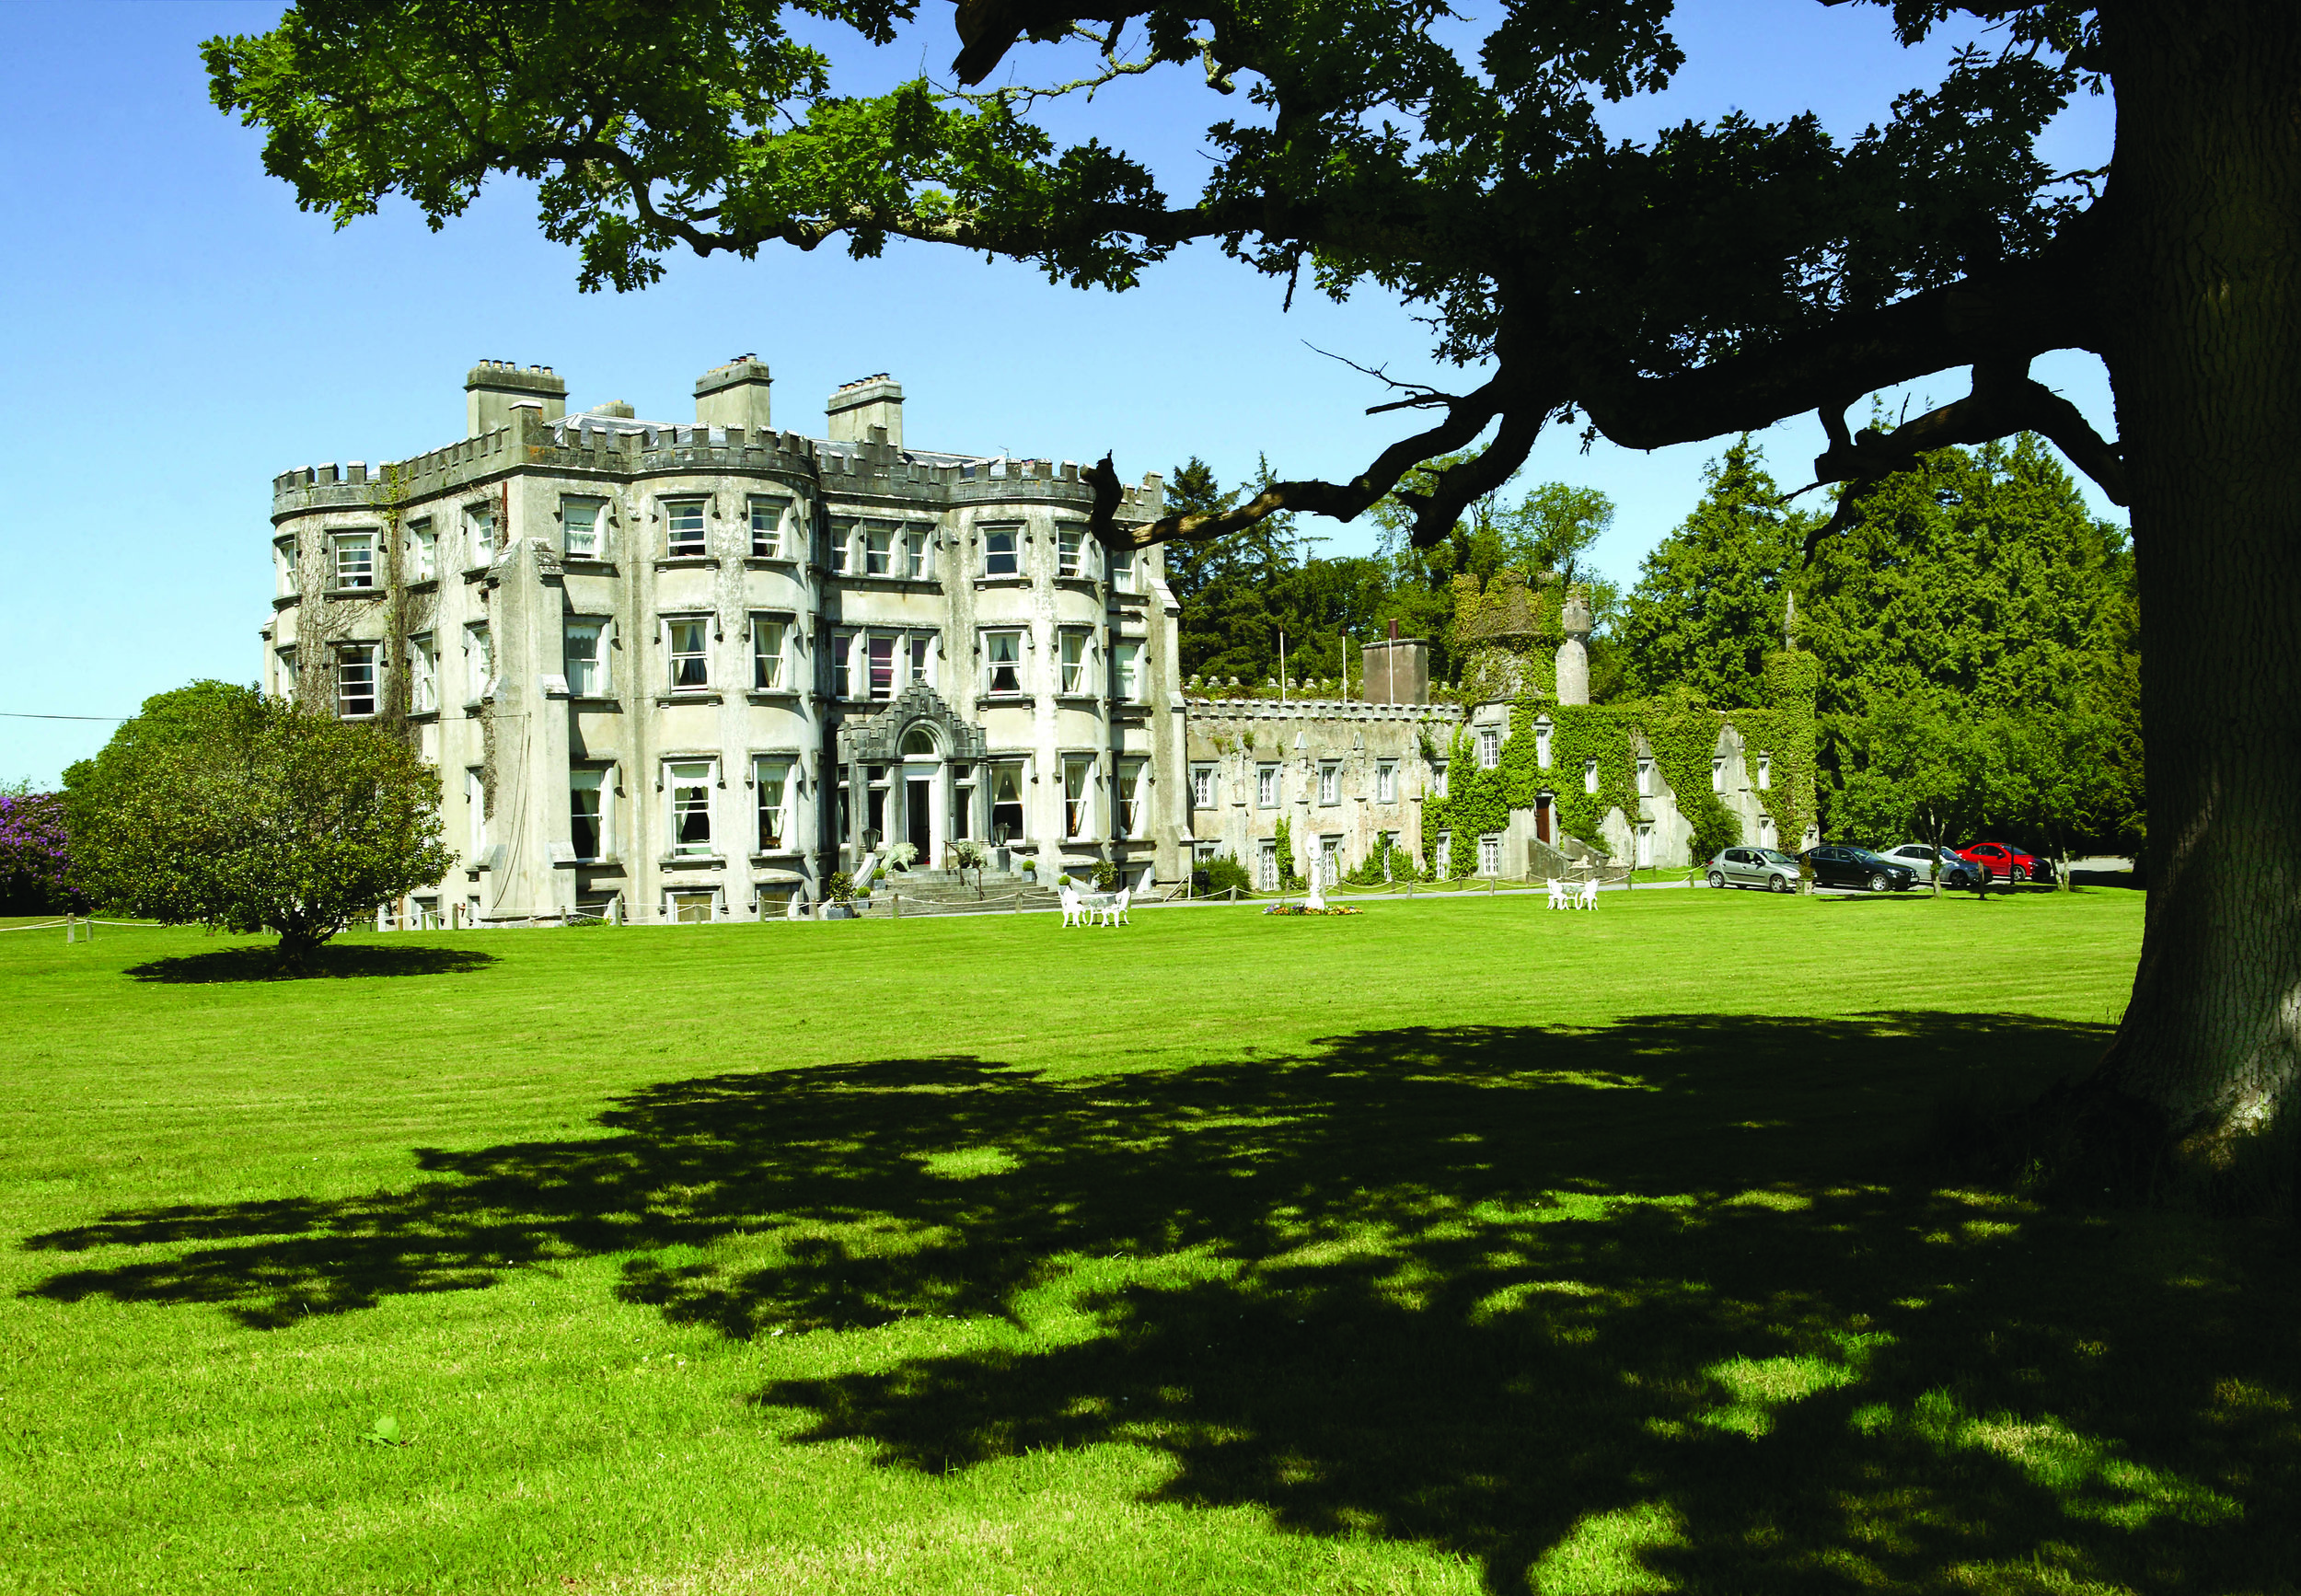 BALLYSEEDE CASTLE HOTEL - TRALEE, COUNTY KERRY - Located amid acres of lush green woodlands and centuries of history and tradition, Ballyseede offers you one of the most memorable places of all to stay in the West of Ireland.